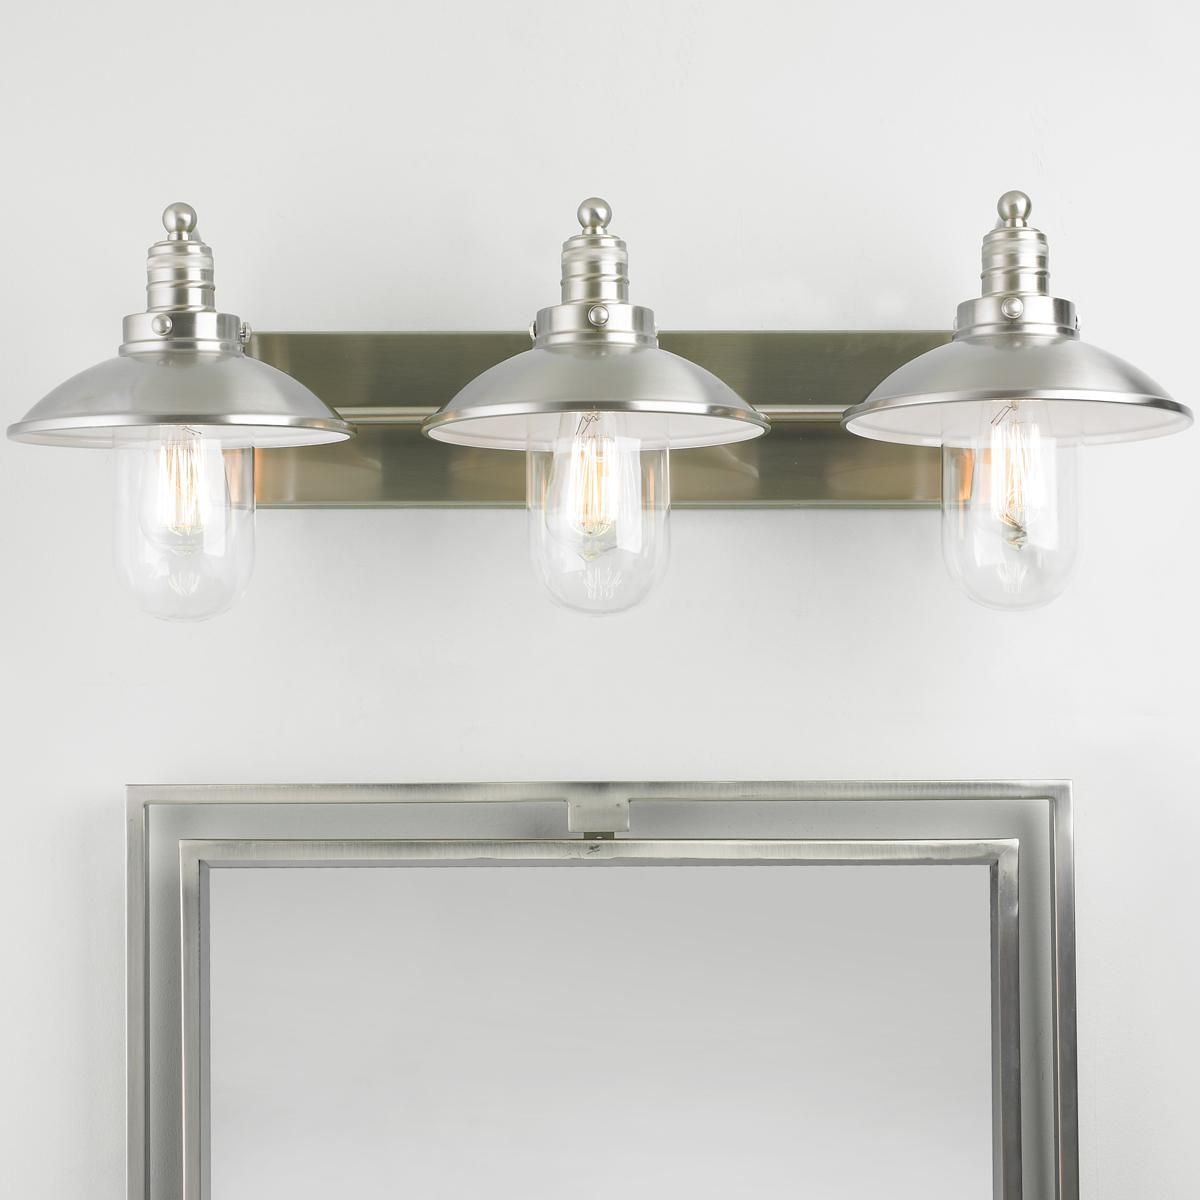 Schooner 3 Light Bath This Vanity Will Complement Nautical Themed Or Inspired Bathroom Decor Available In Brushed Nickel